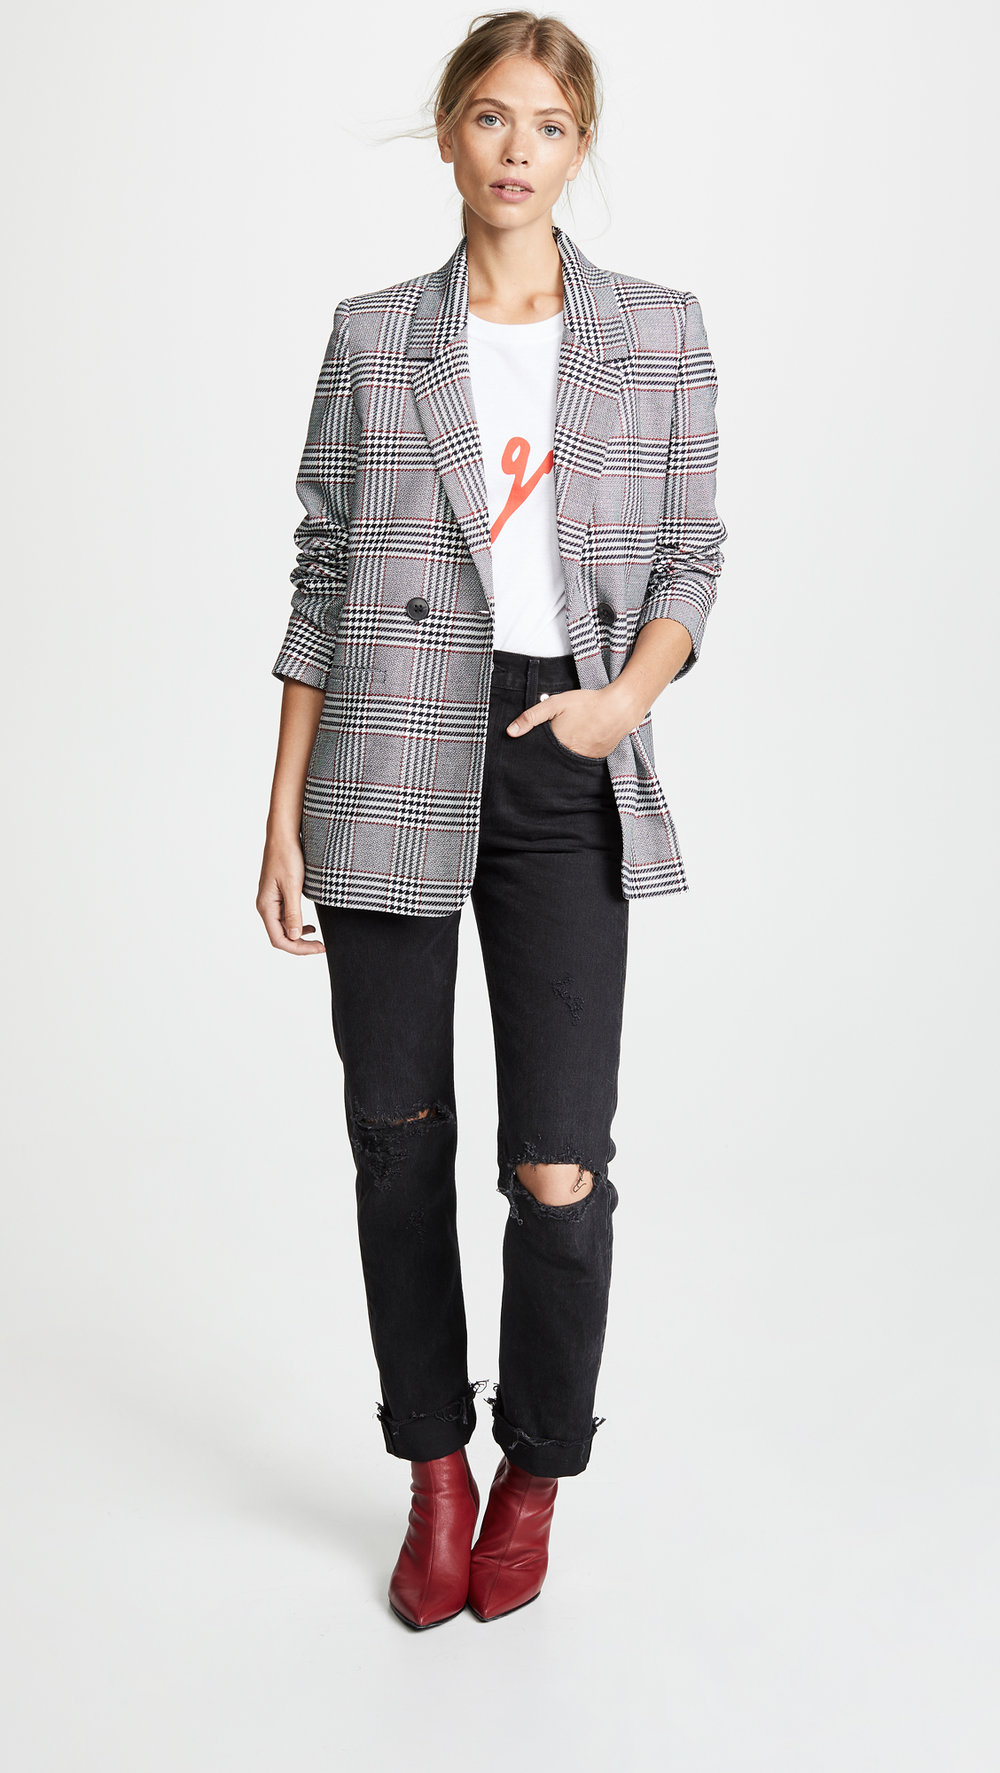 anine bing plaid2.jpg